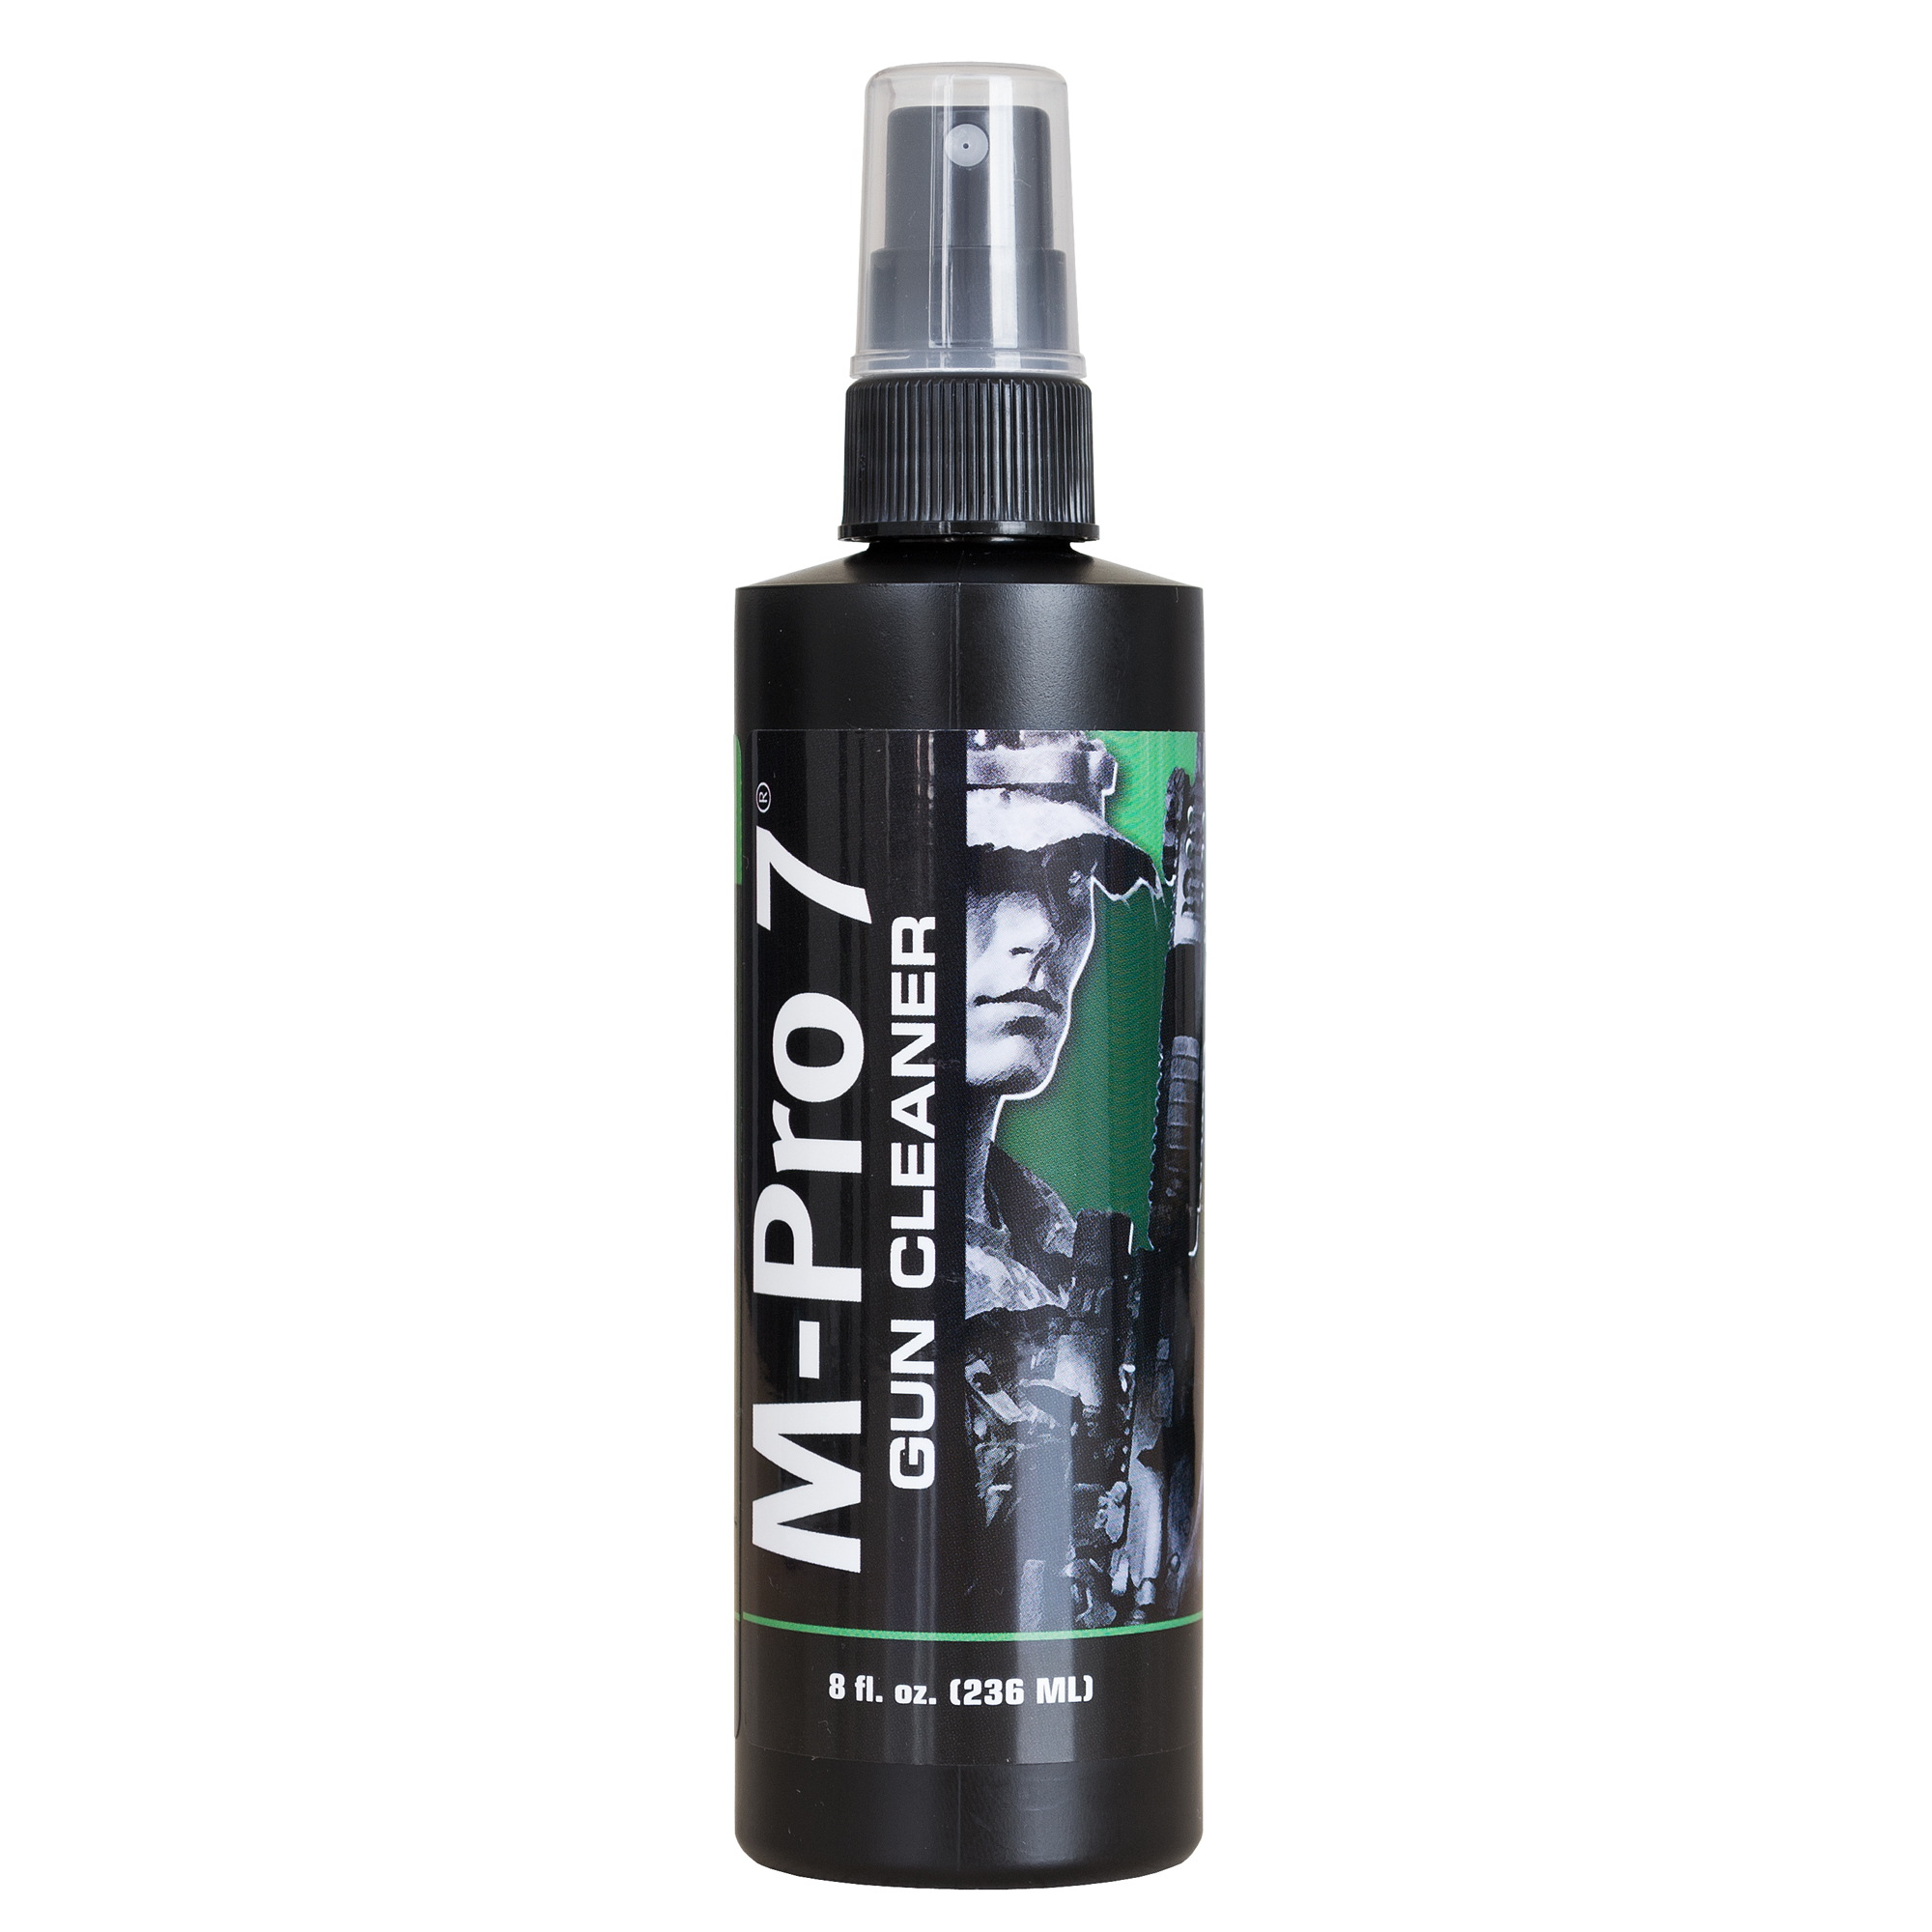 "M-Pro7 gun cleaners and lubricants are designed to enhance reliability"" performance"" service life and operator safety. - For professionals who want to spend more time training and less time cleaning."